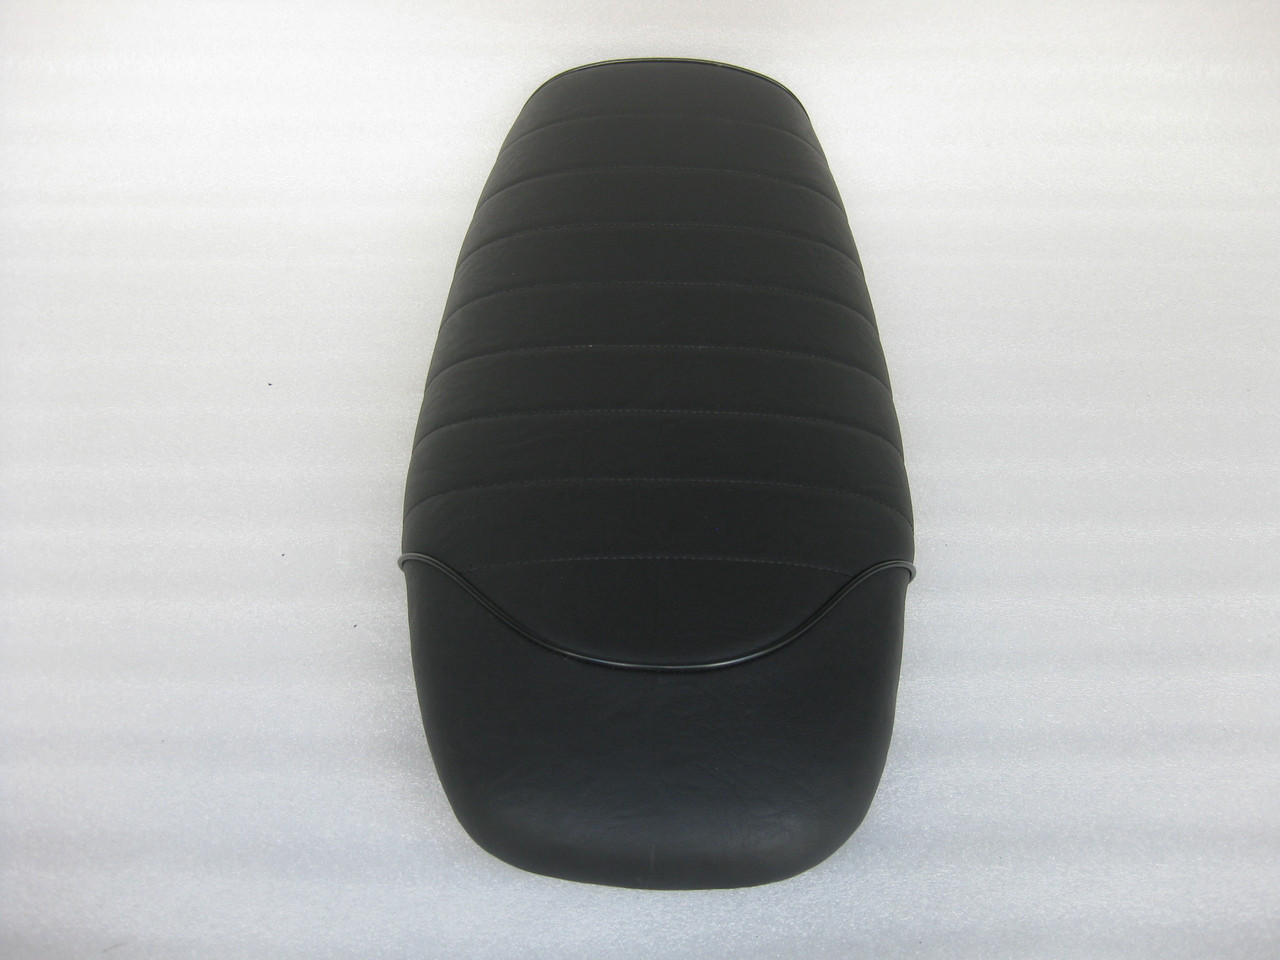 Honda CB400T HAWK CB400A CM400 Cafe Racer Motorcycle Seat with modified seat pan #4278